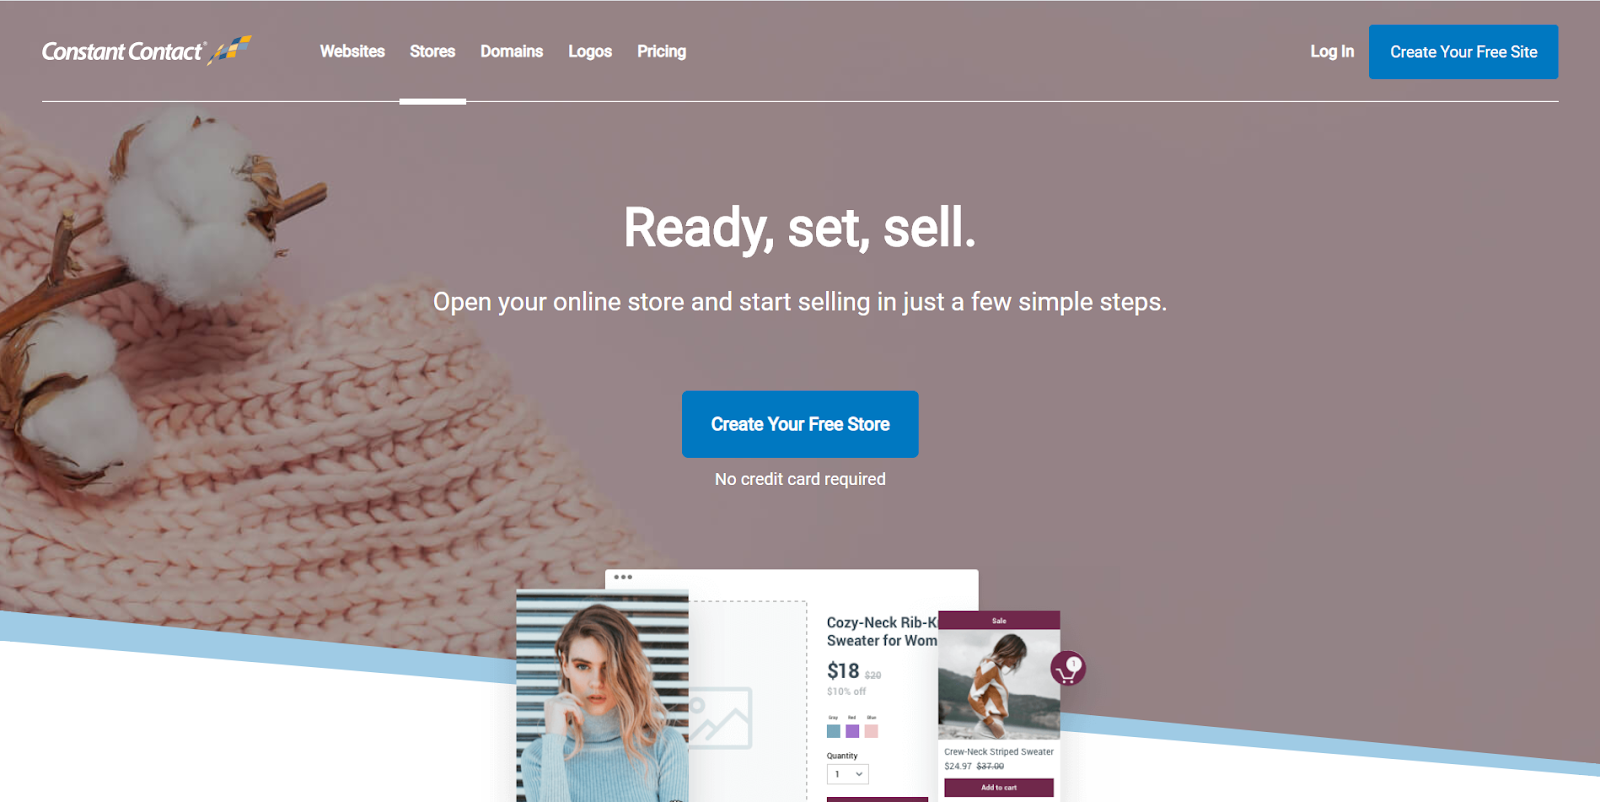 Constant Contact's website builder online store starting page